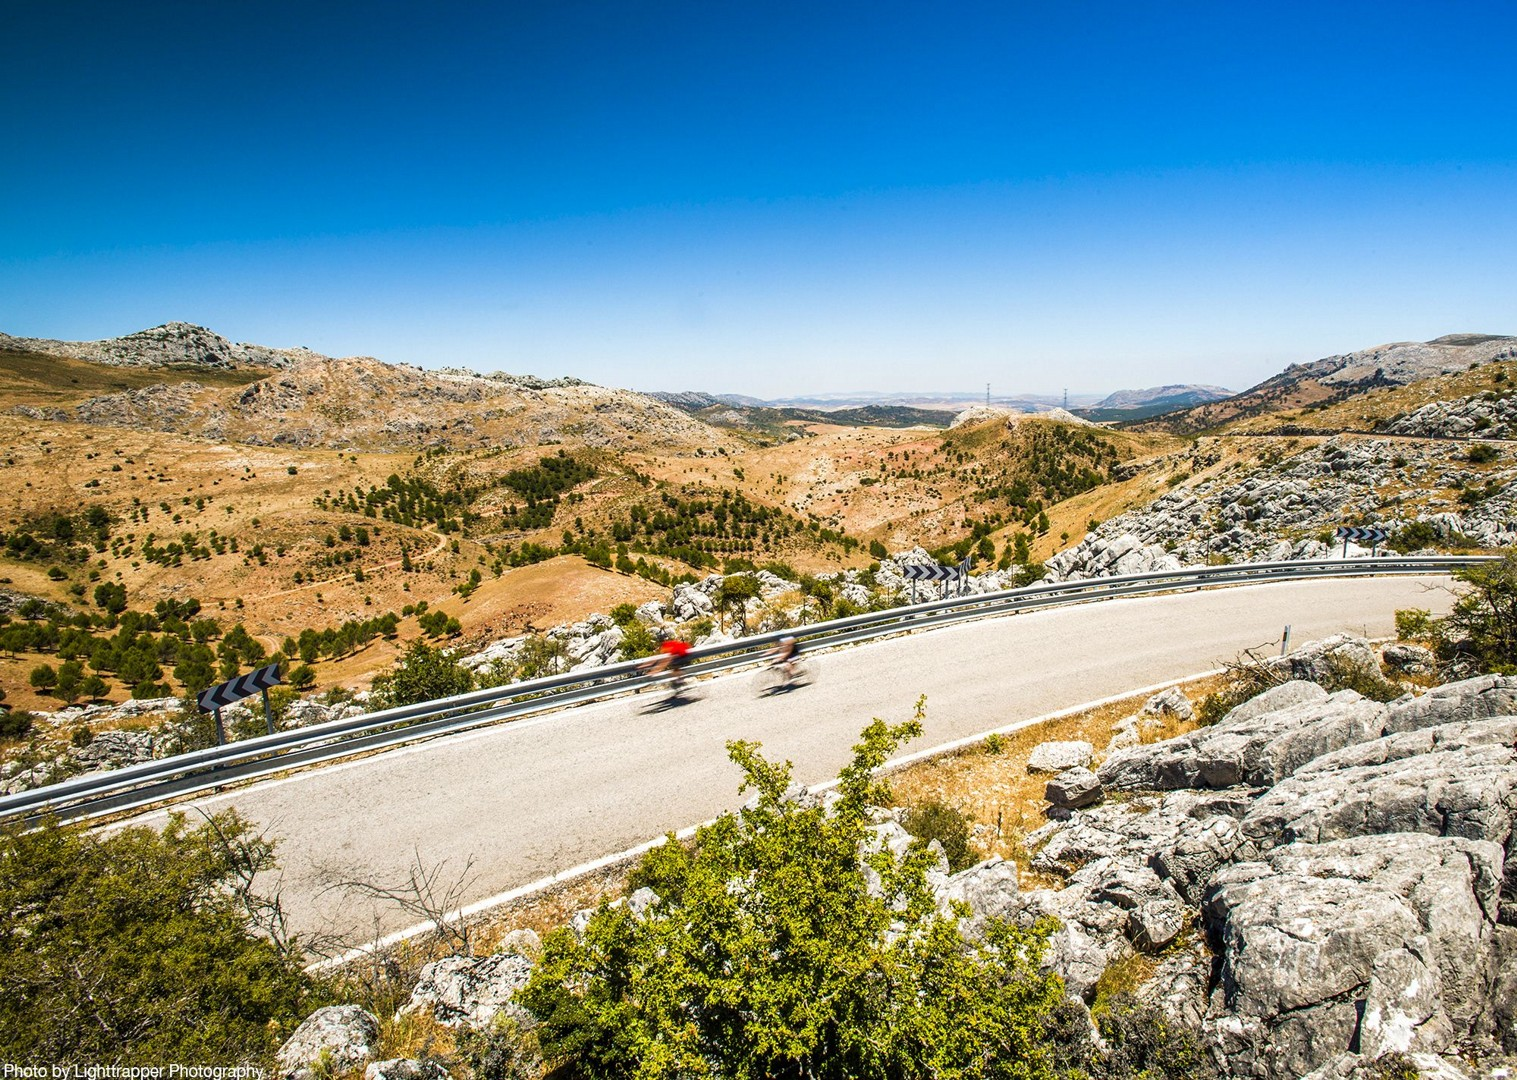 guided-road-cycling-tour-spanish-limestone-mountains-saddle-skedaddle.jpg - Southern Spain - Roads of Ronda - Guided Road Cycling Holiday - Road Cycling